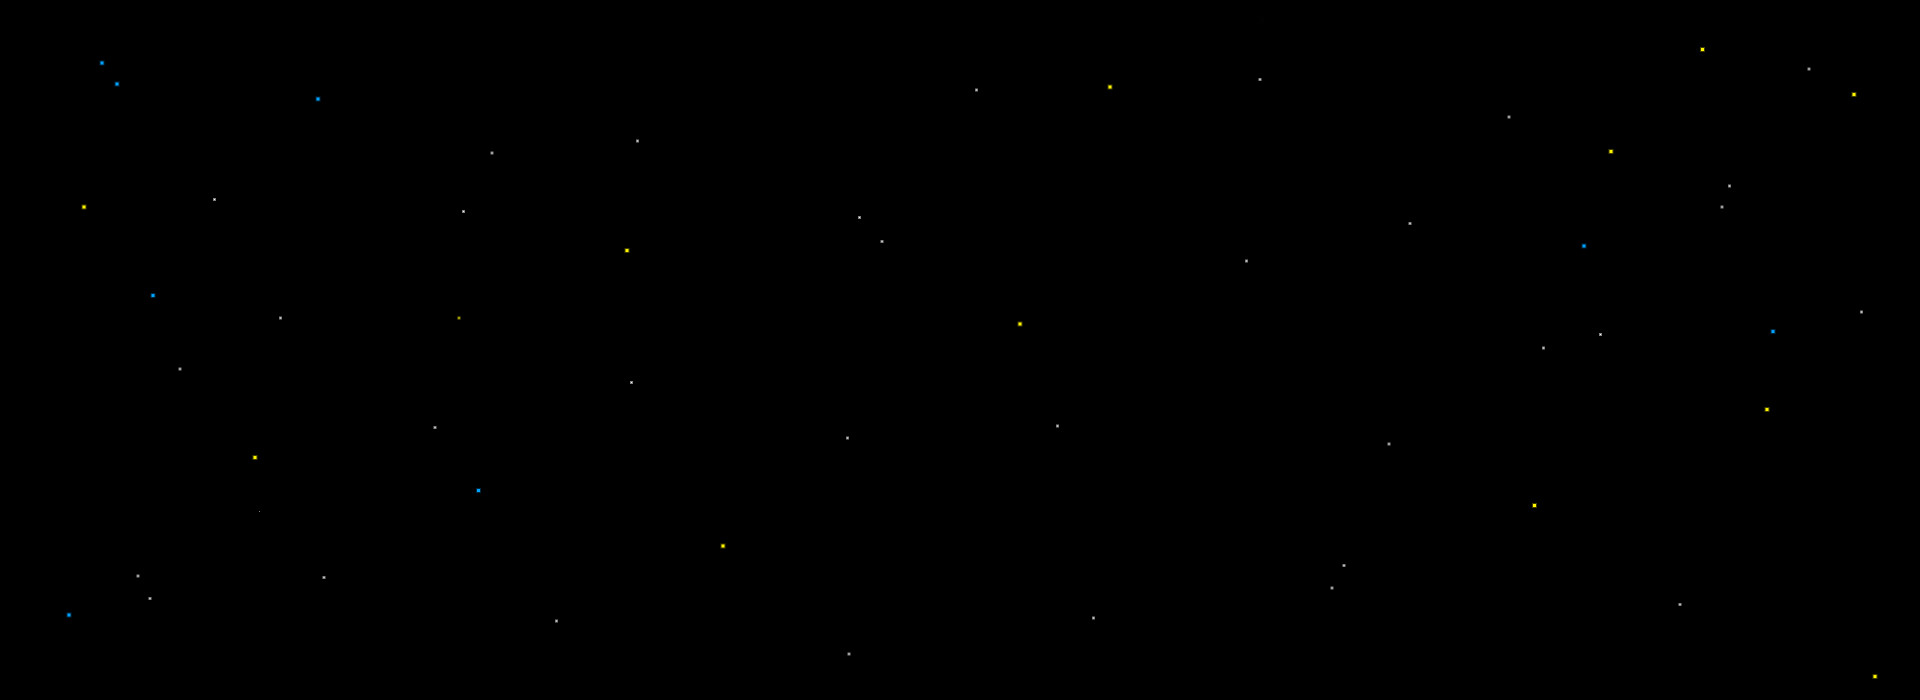 small and subtle stars on a black background